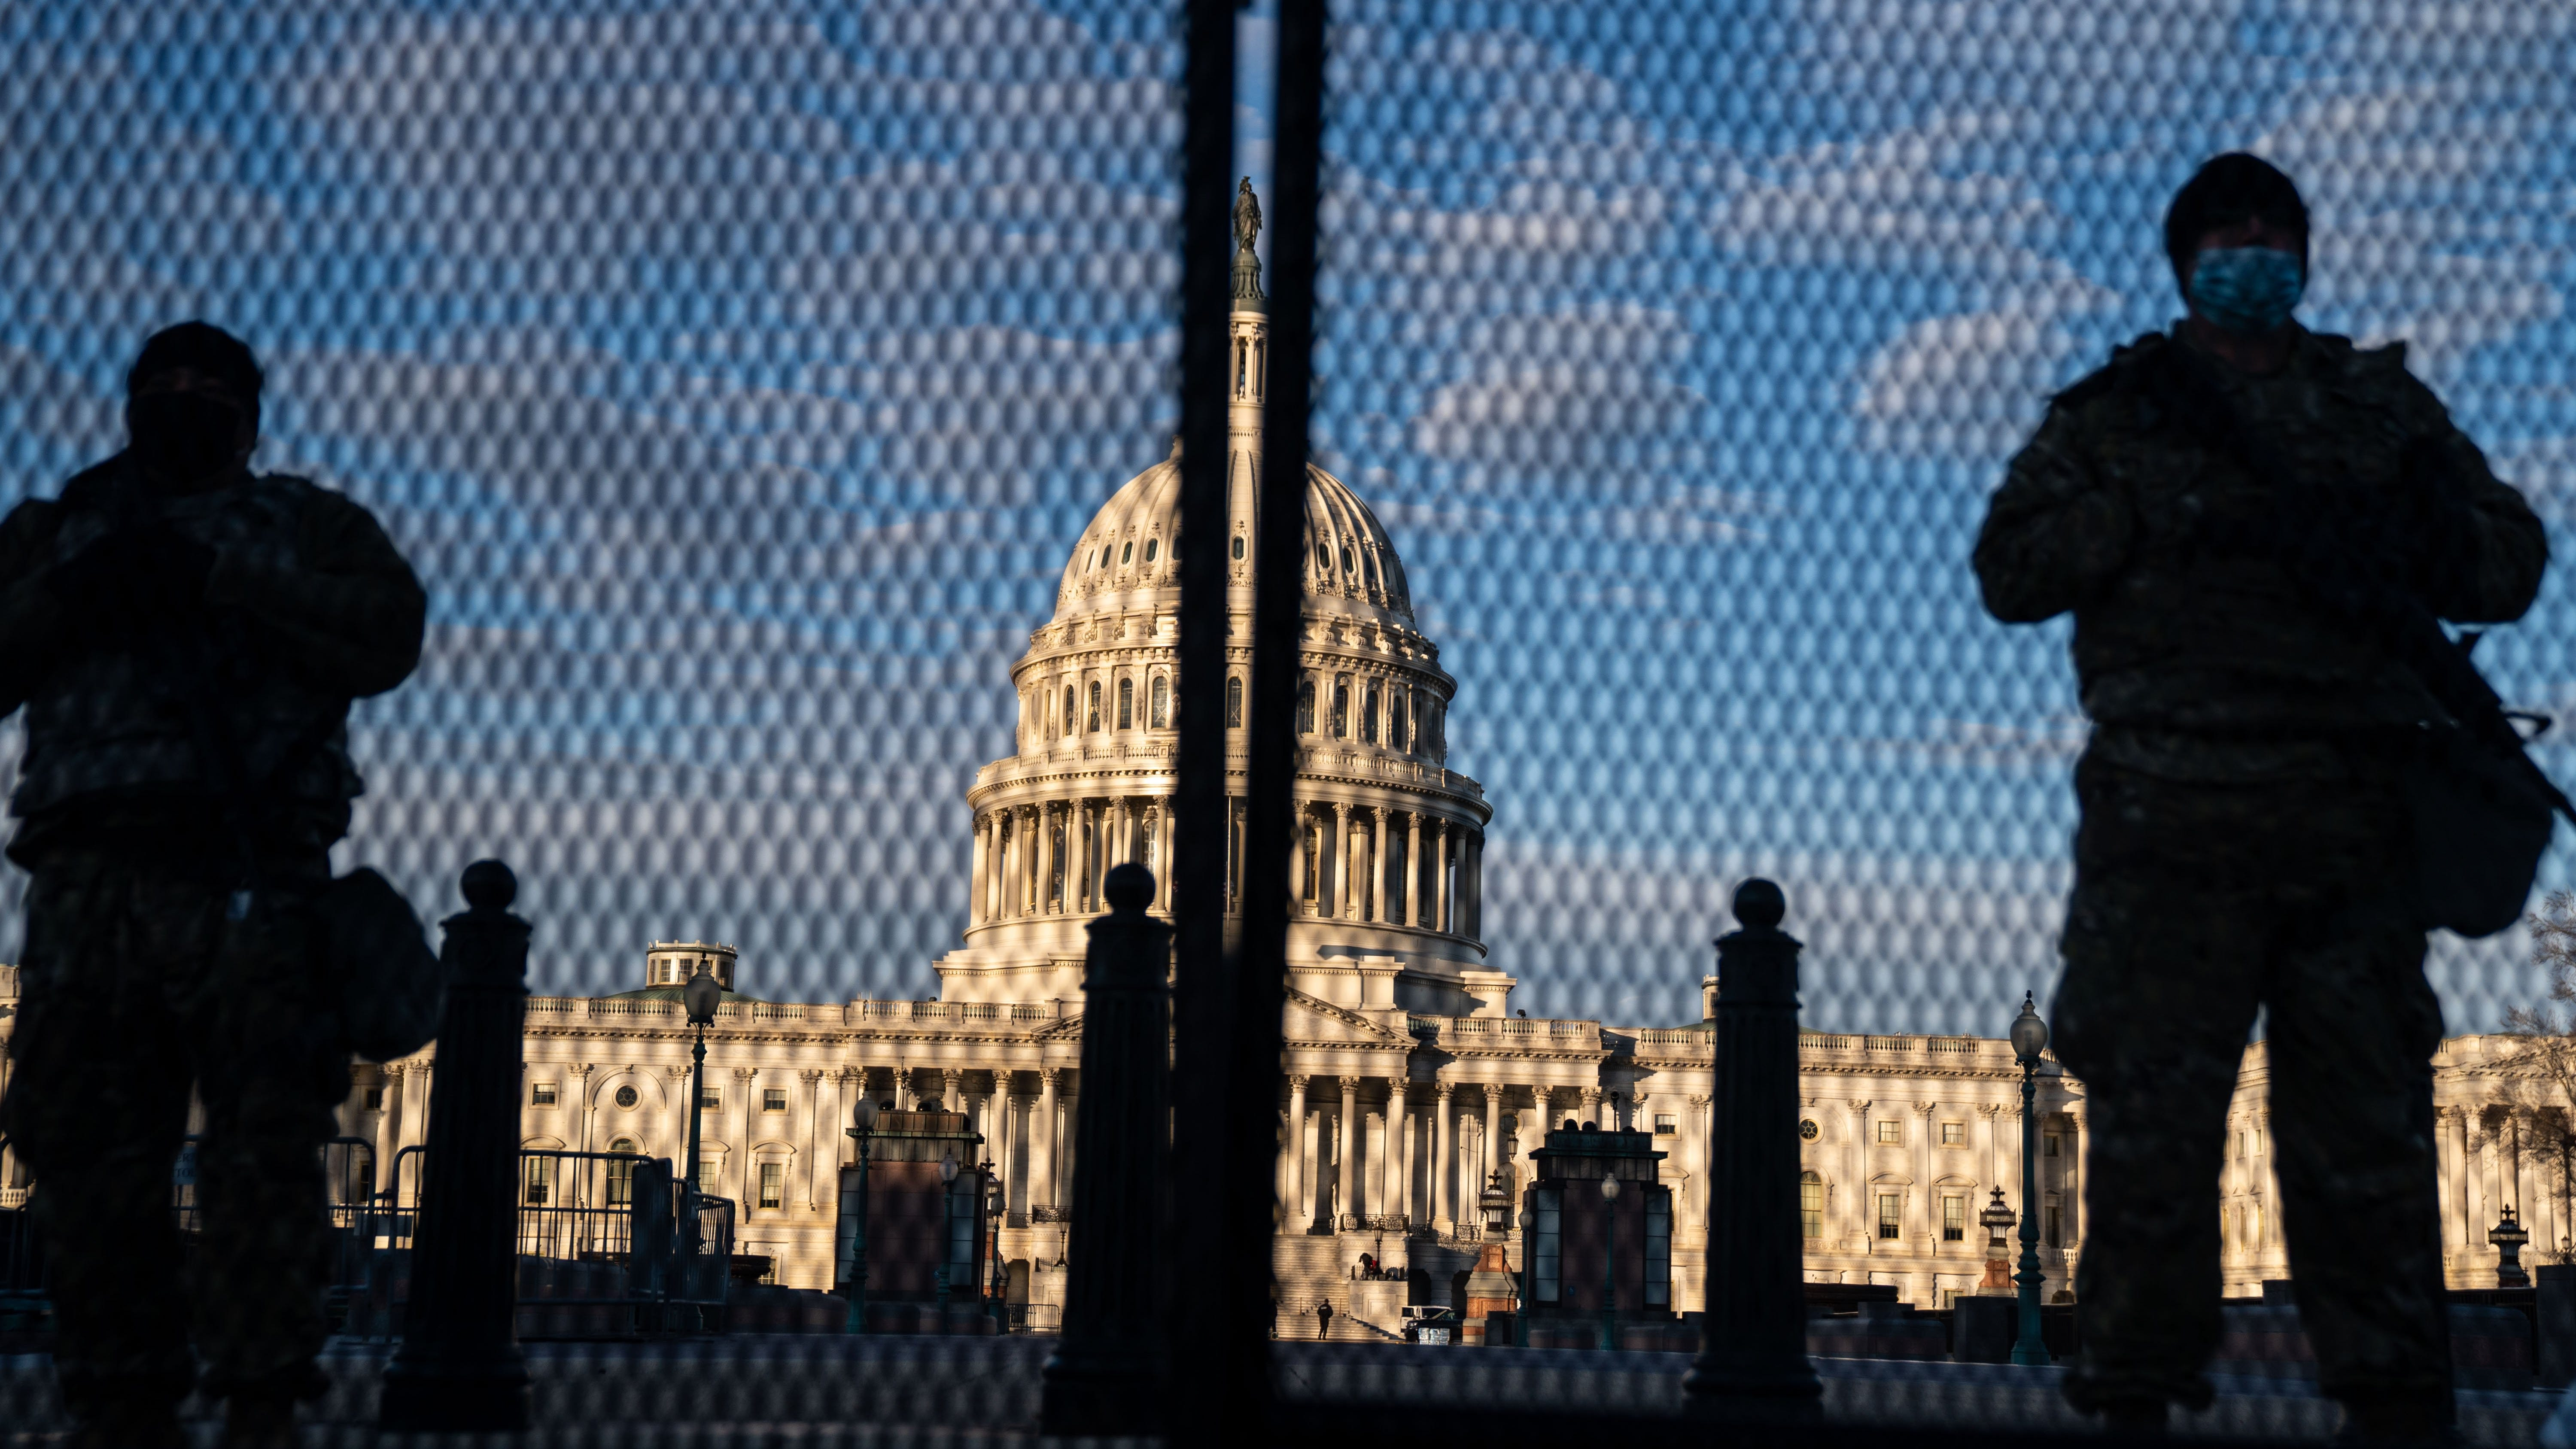 National Guard troops stand behind security fencing with the dome of the U.S. Capitol Building behind them on Saturday in Washington, D.C. [KeENT NISHIMURA/LOS ANGELES TIMES/TNS]